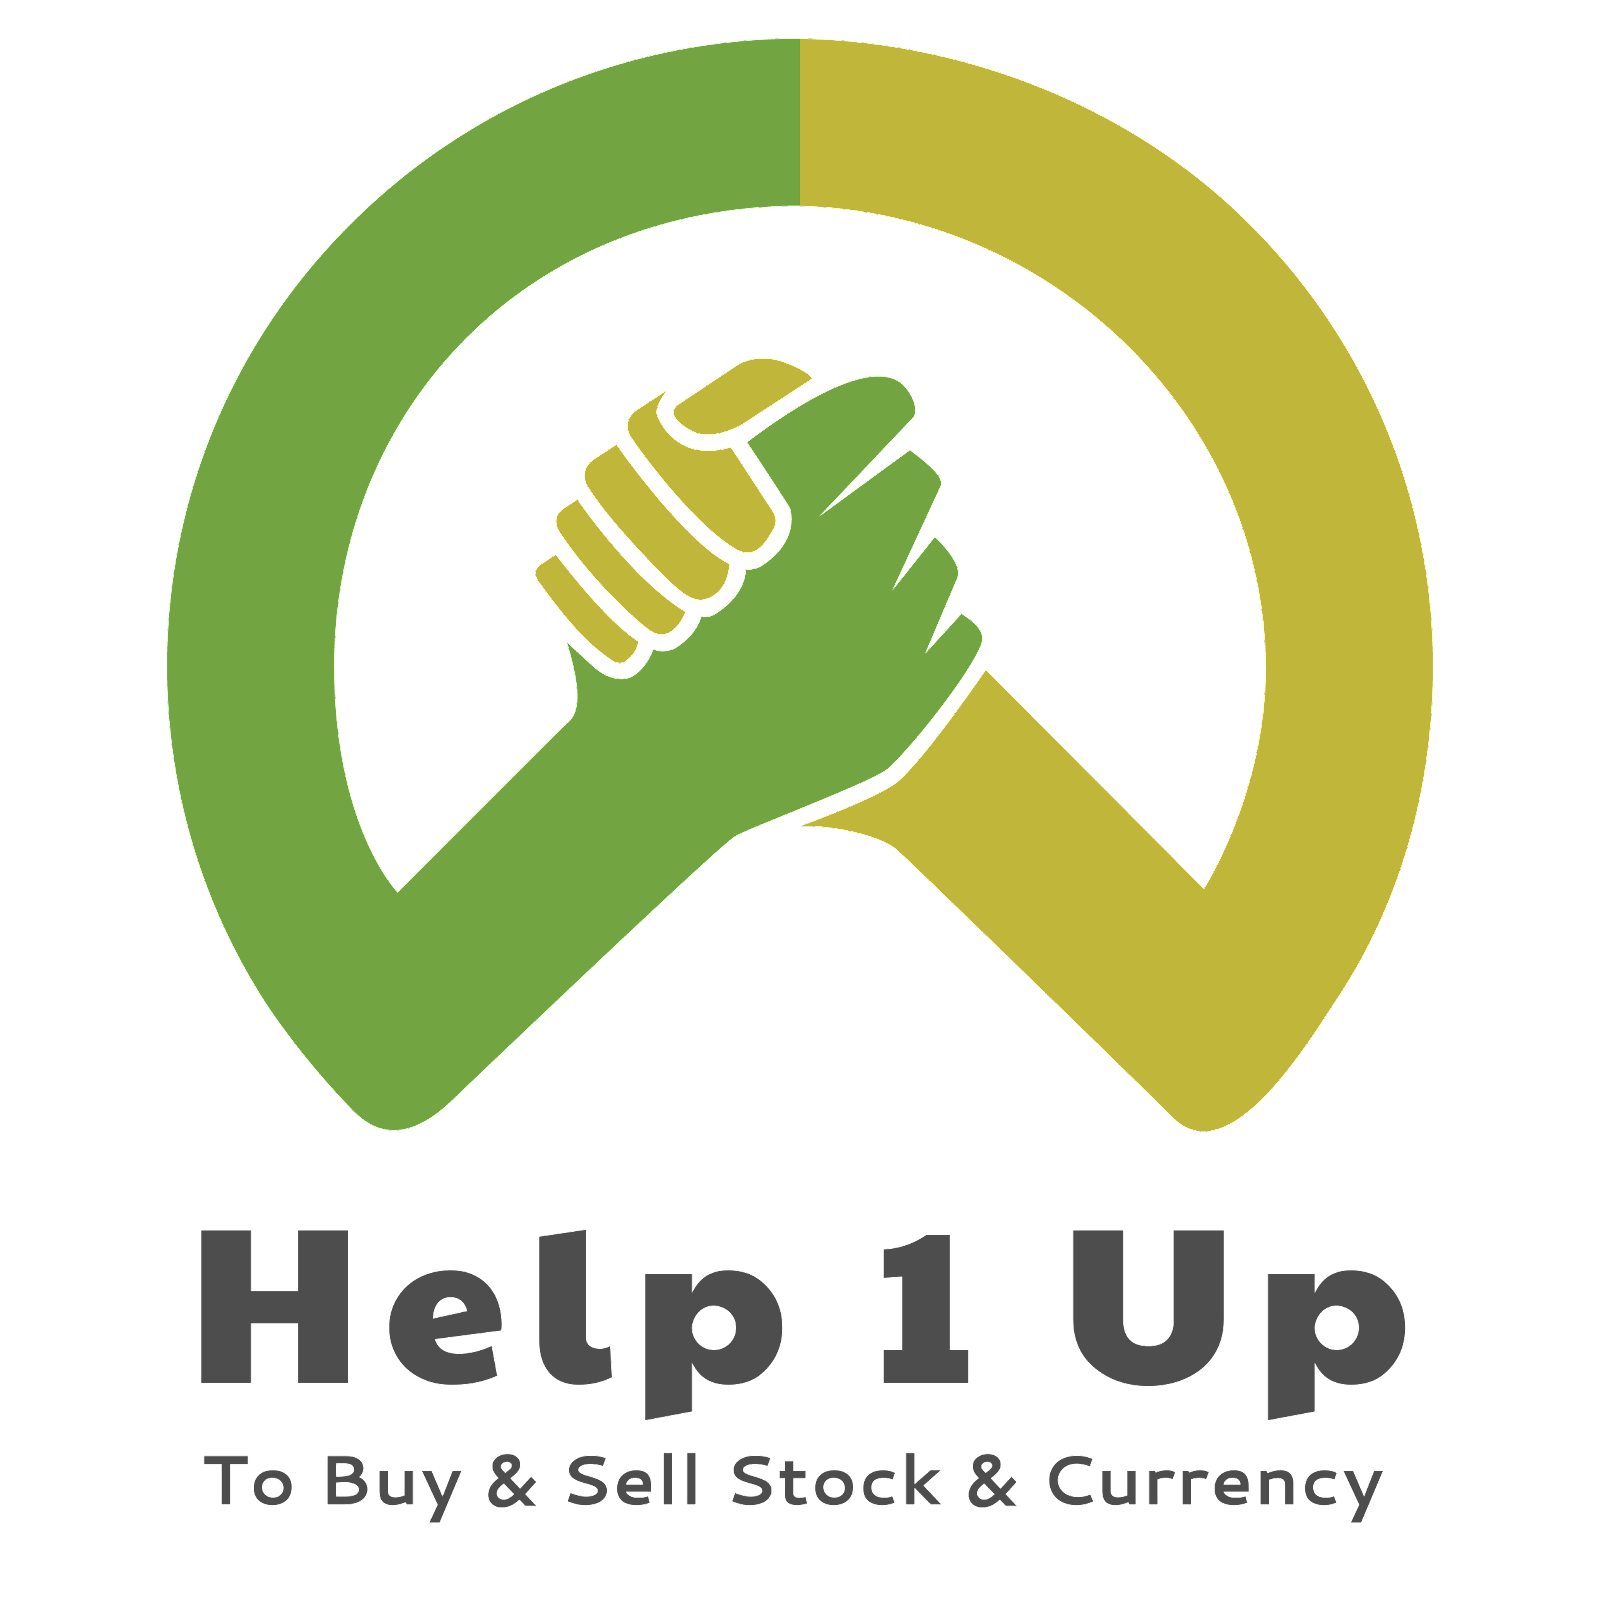 Help1up (1).png